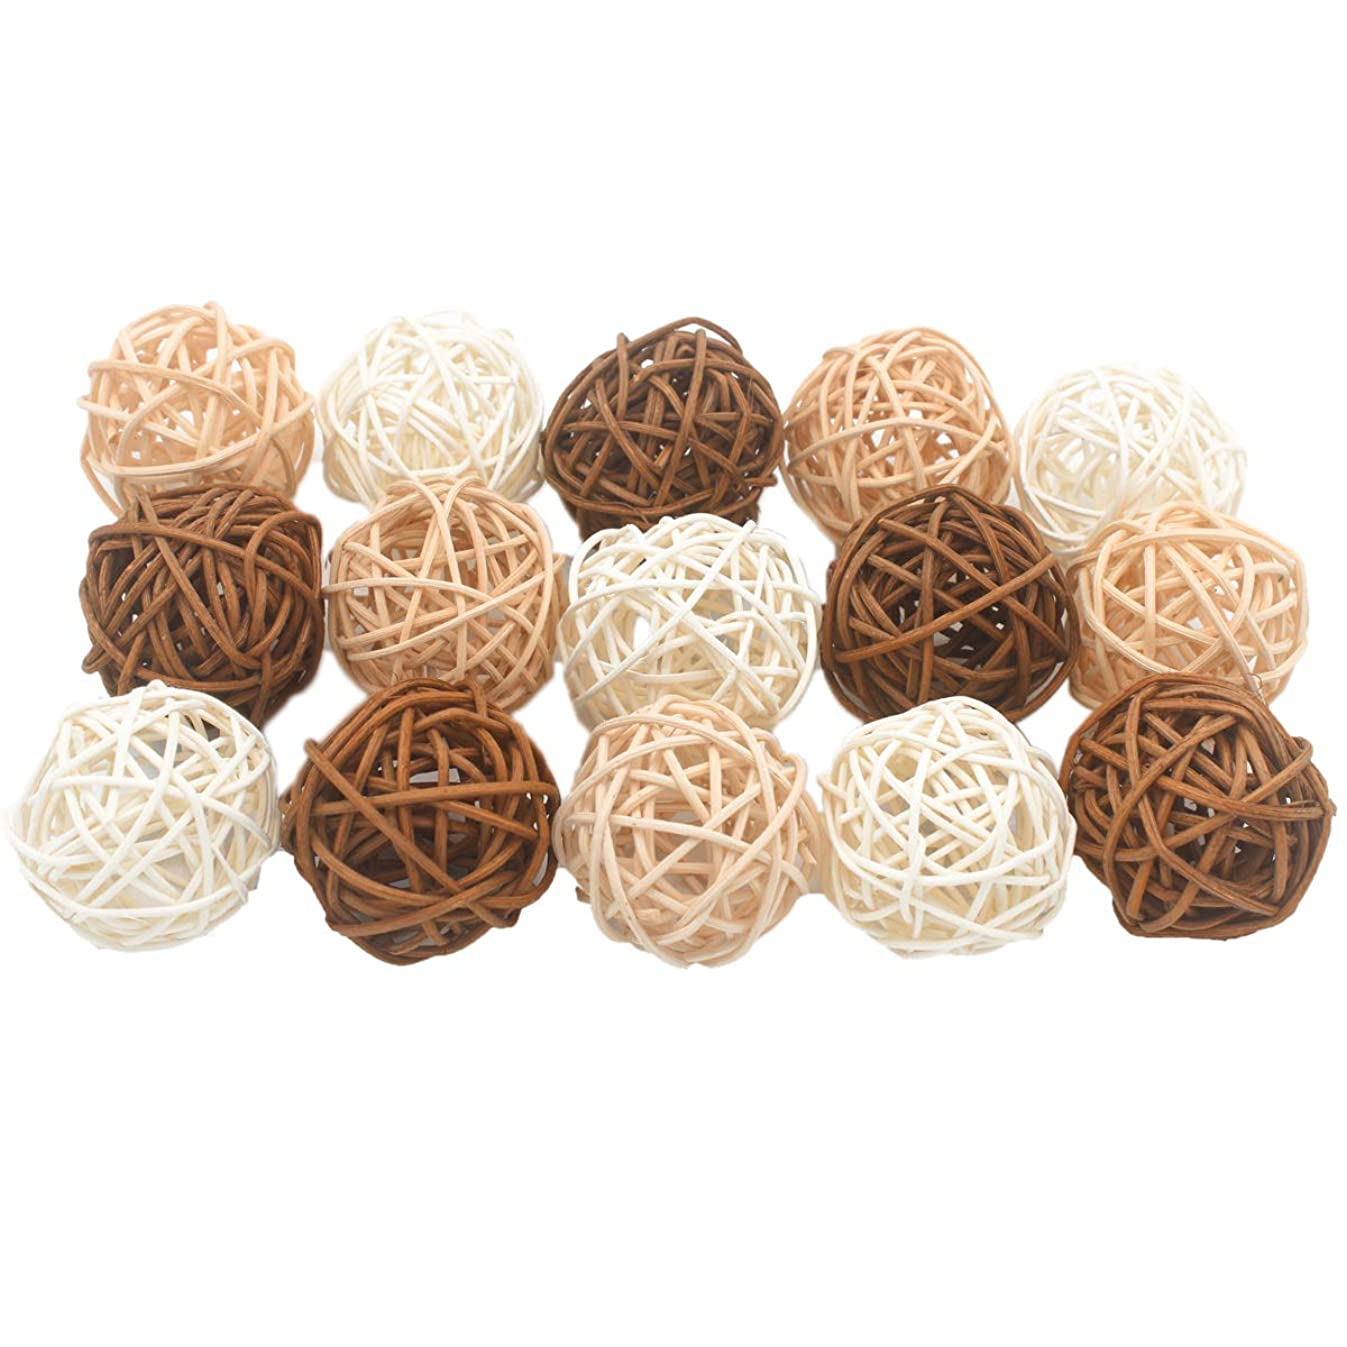 ALLHEARTDESIRES 15PCS Mixed Cream Tan Brown White Rattan Cane Wicker Wooden Ball Rustic Wedding Vintage Baby Shower Birthday Nursery Decoration